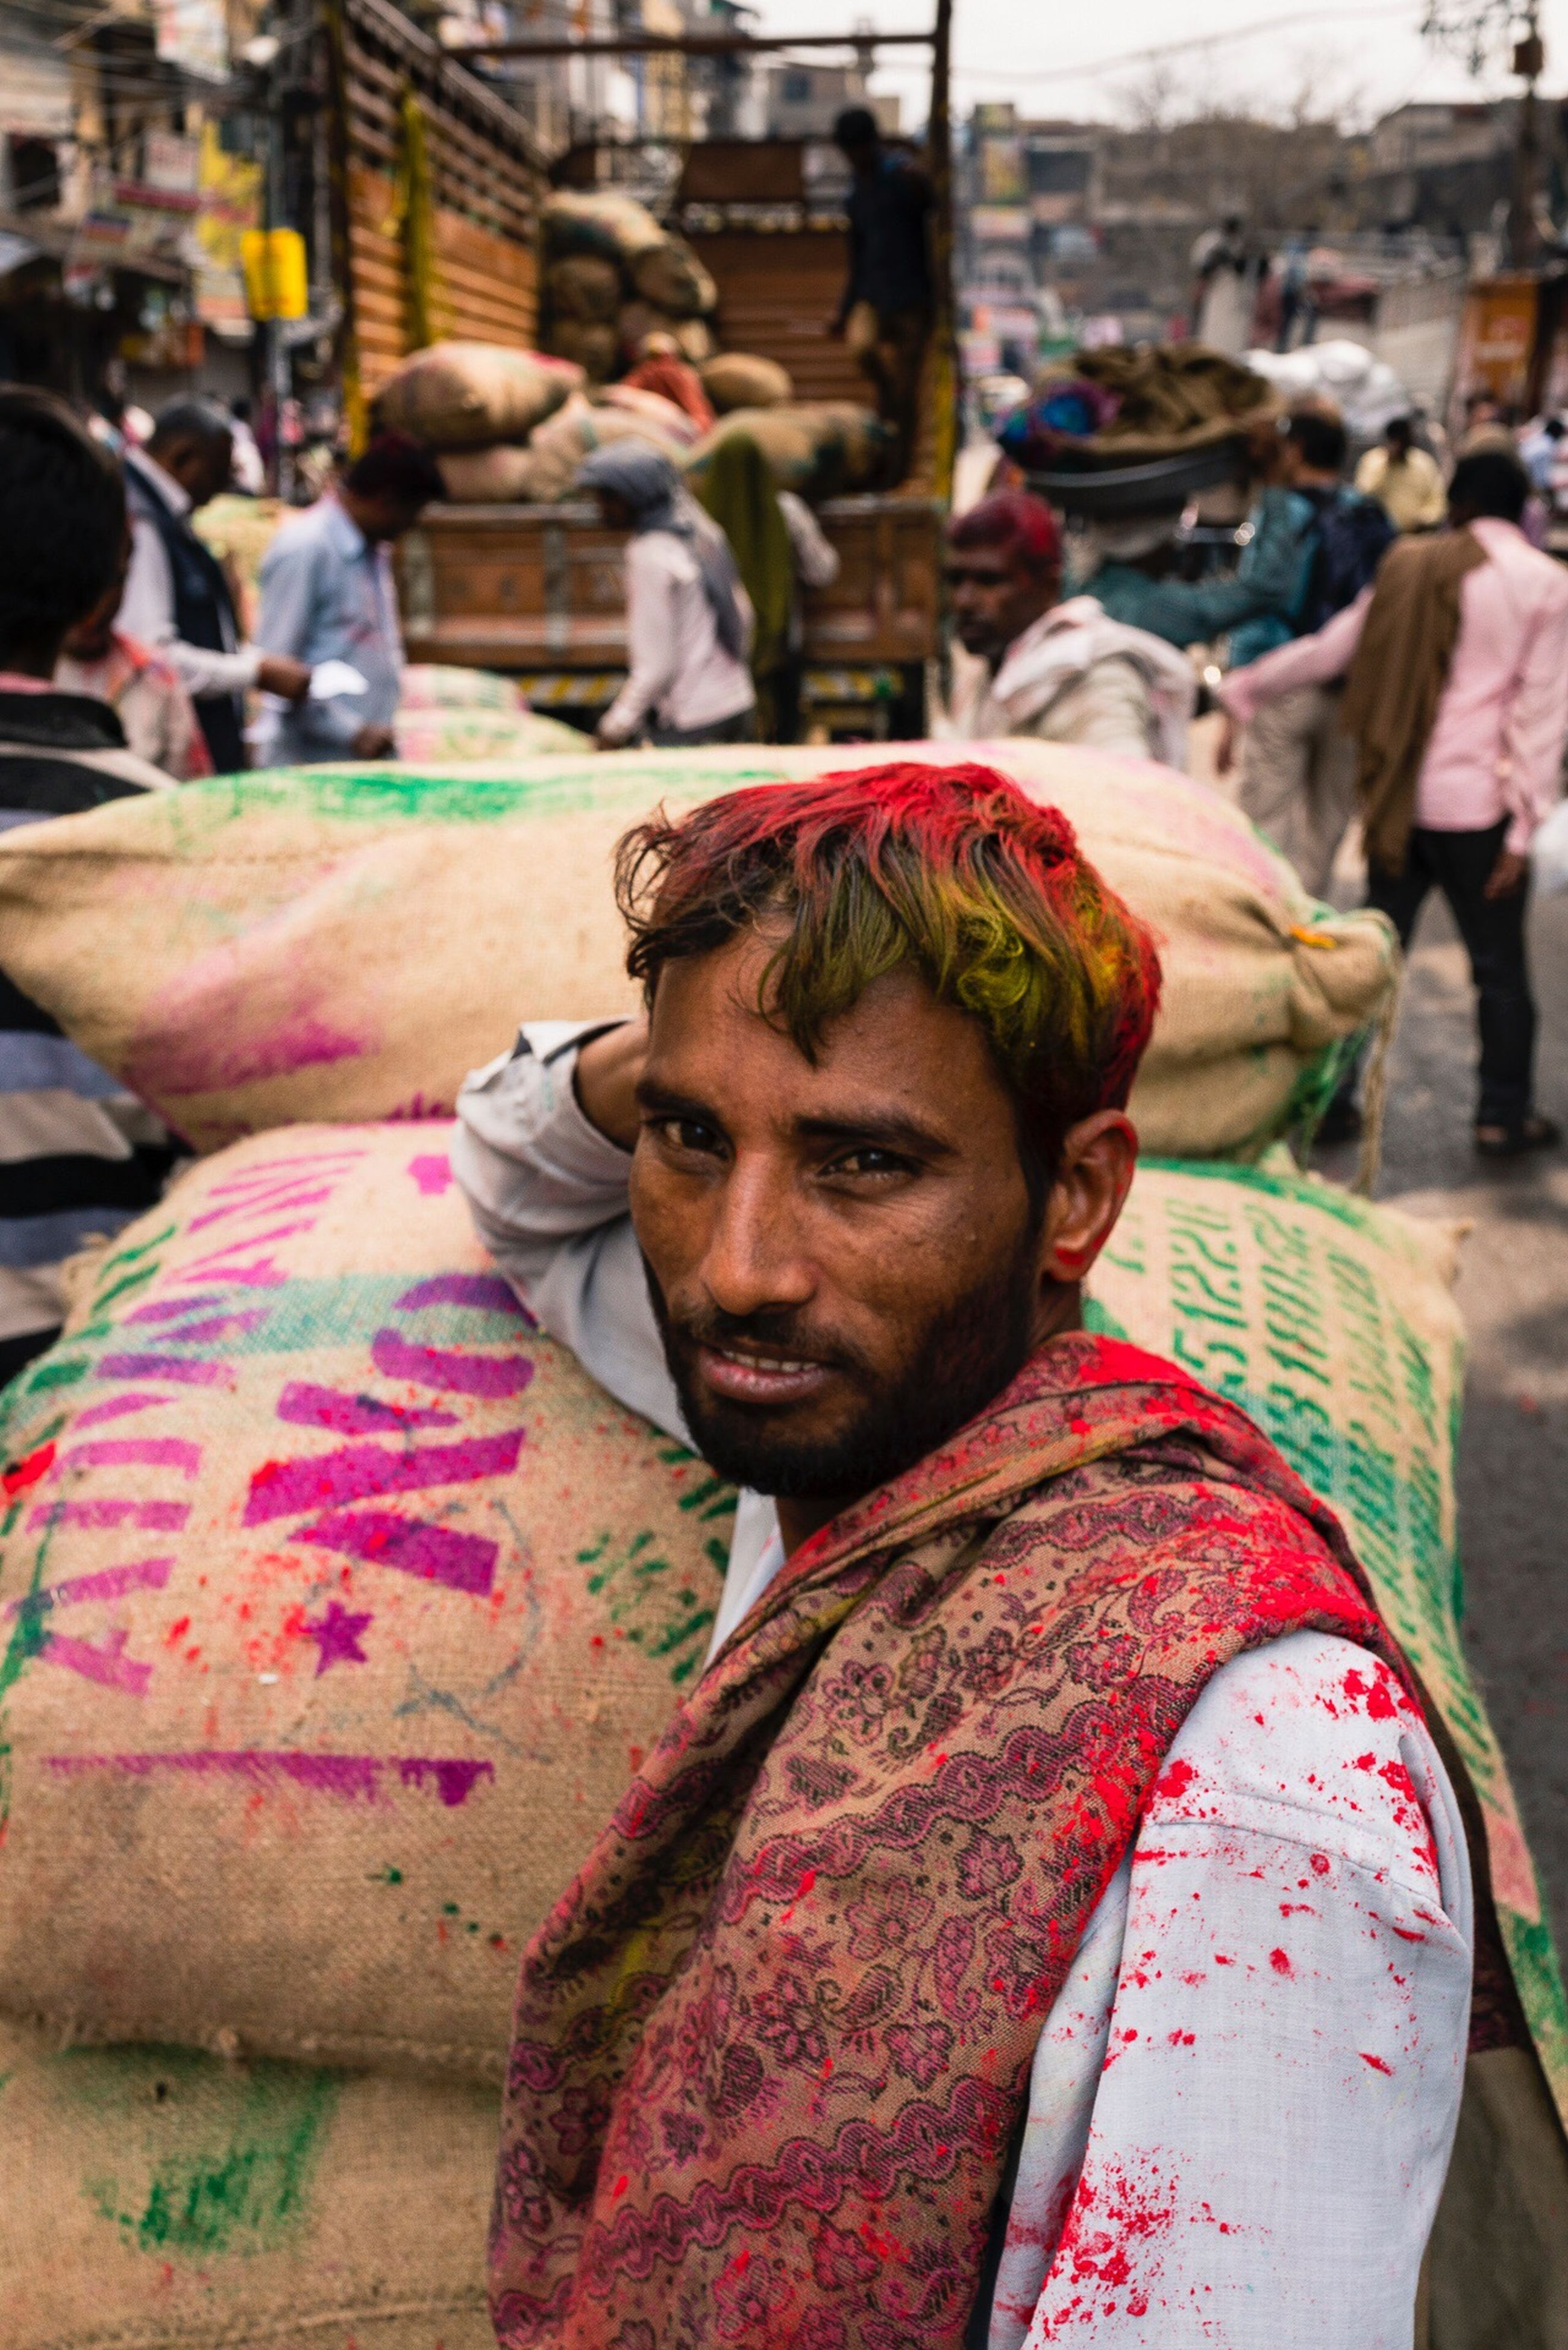 real people, incidental people, focus on foreground, one person, holi, traditional clothing, lifestyles, sitting, outdoors, day, powder paint, men, turban, mammal, close-up, adult, people, adults only